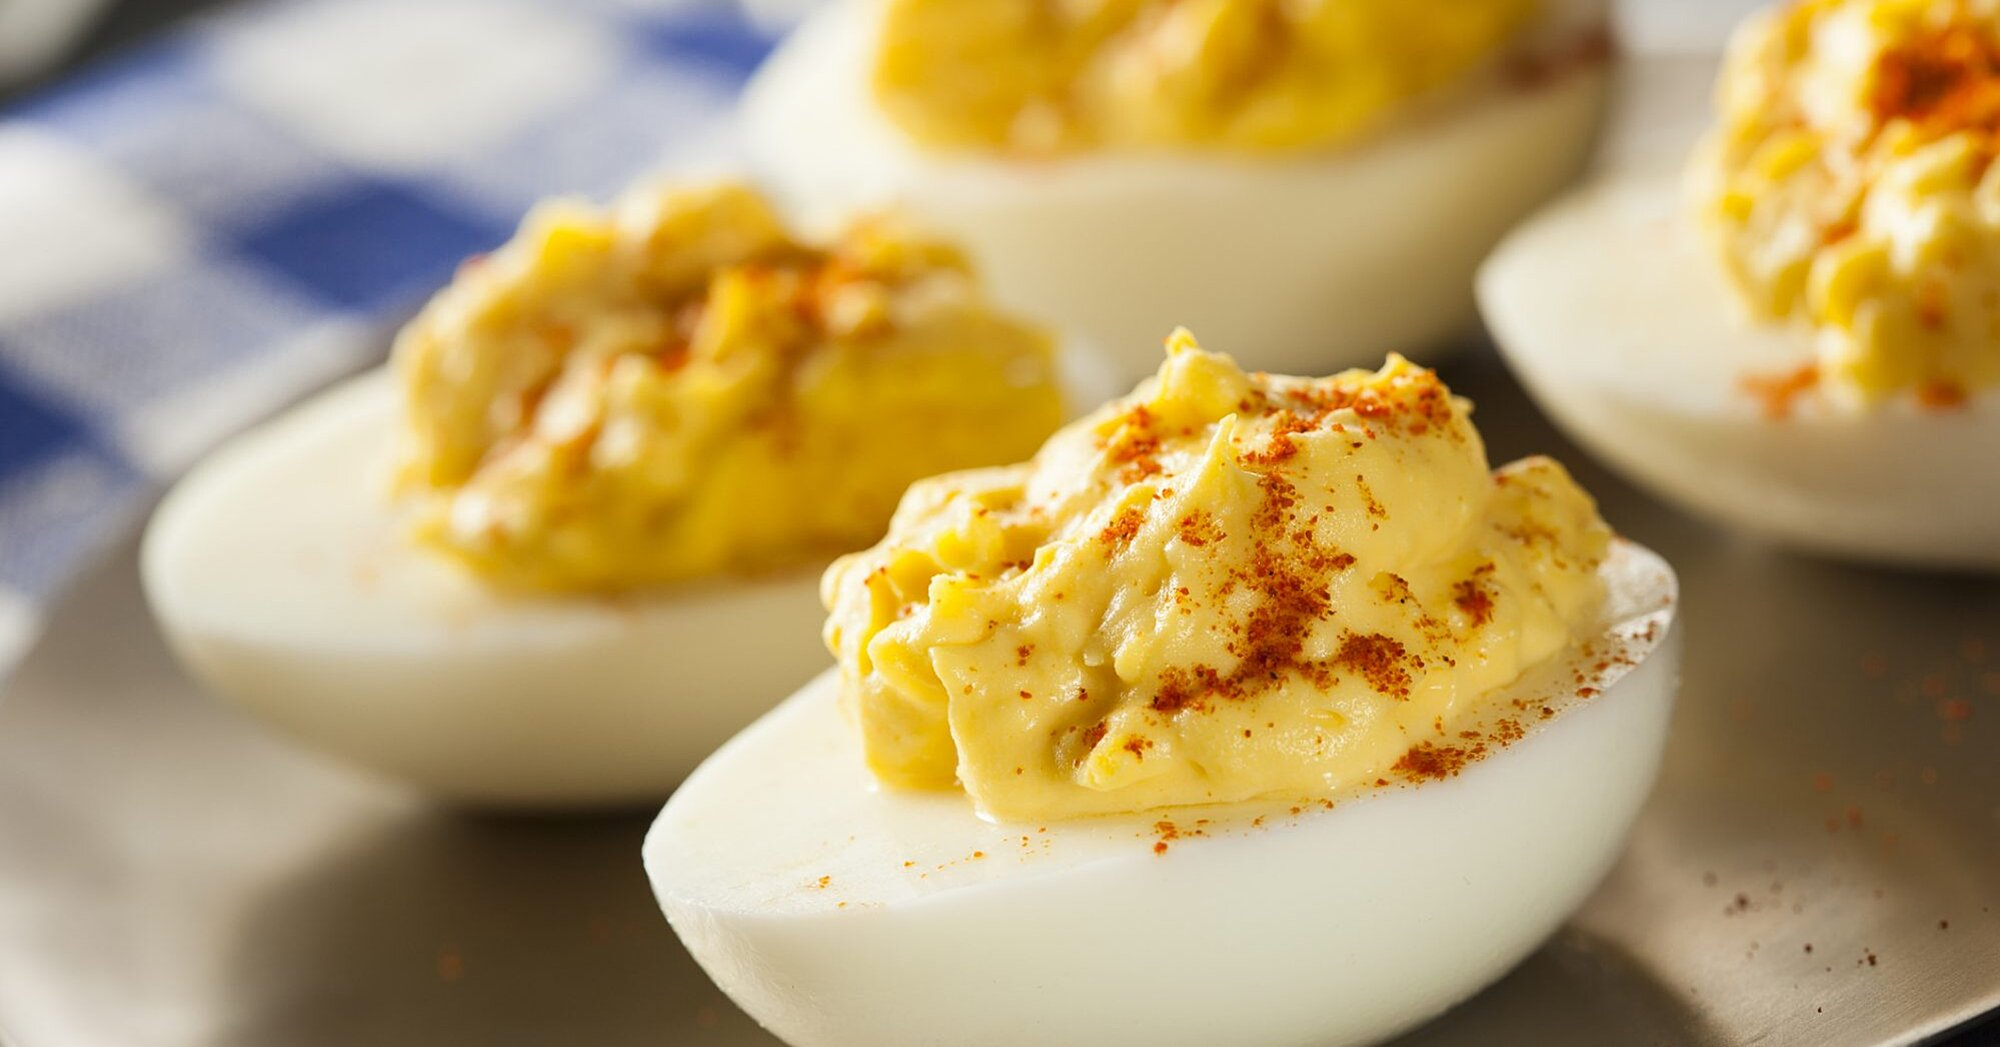 I Grew Up Watching My Grandmother Sneak Durkees Into the Deviled Eggs—And I'll Always Do the Same